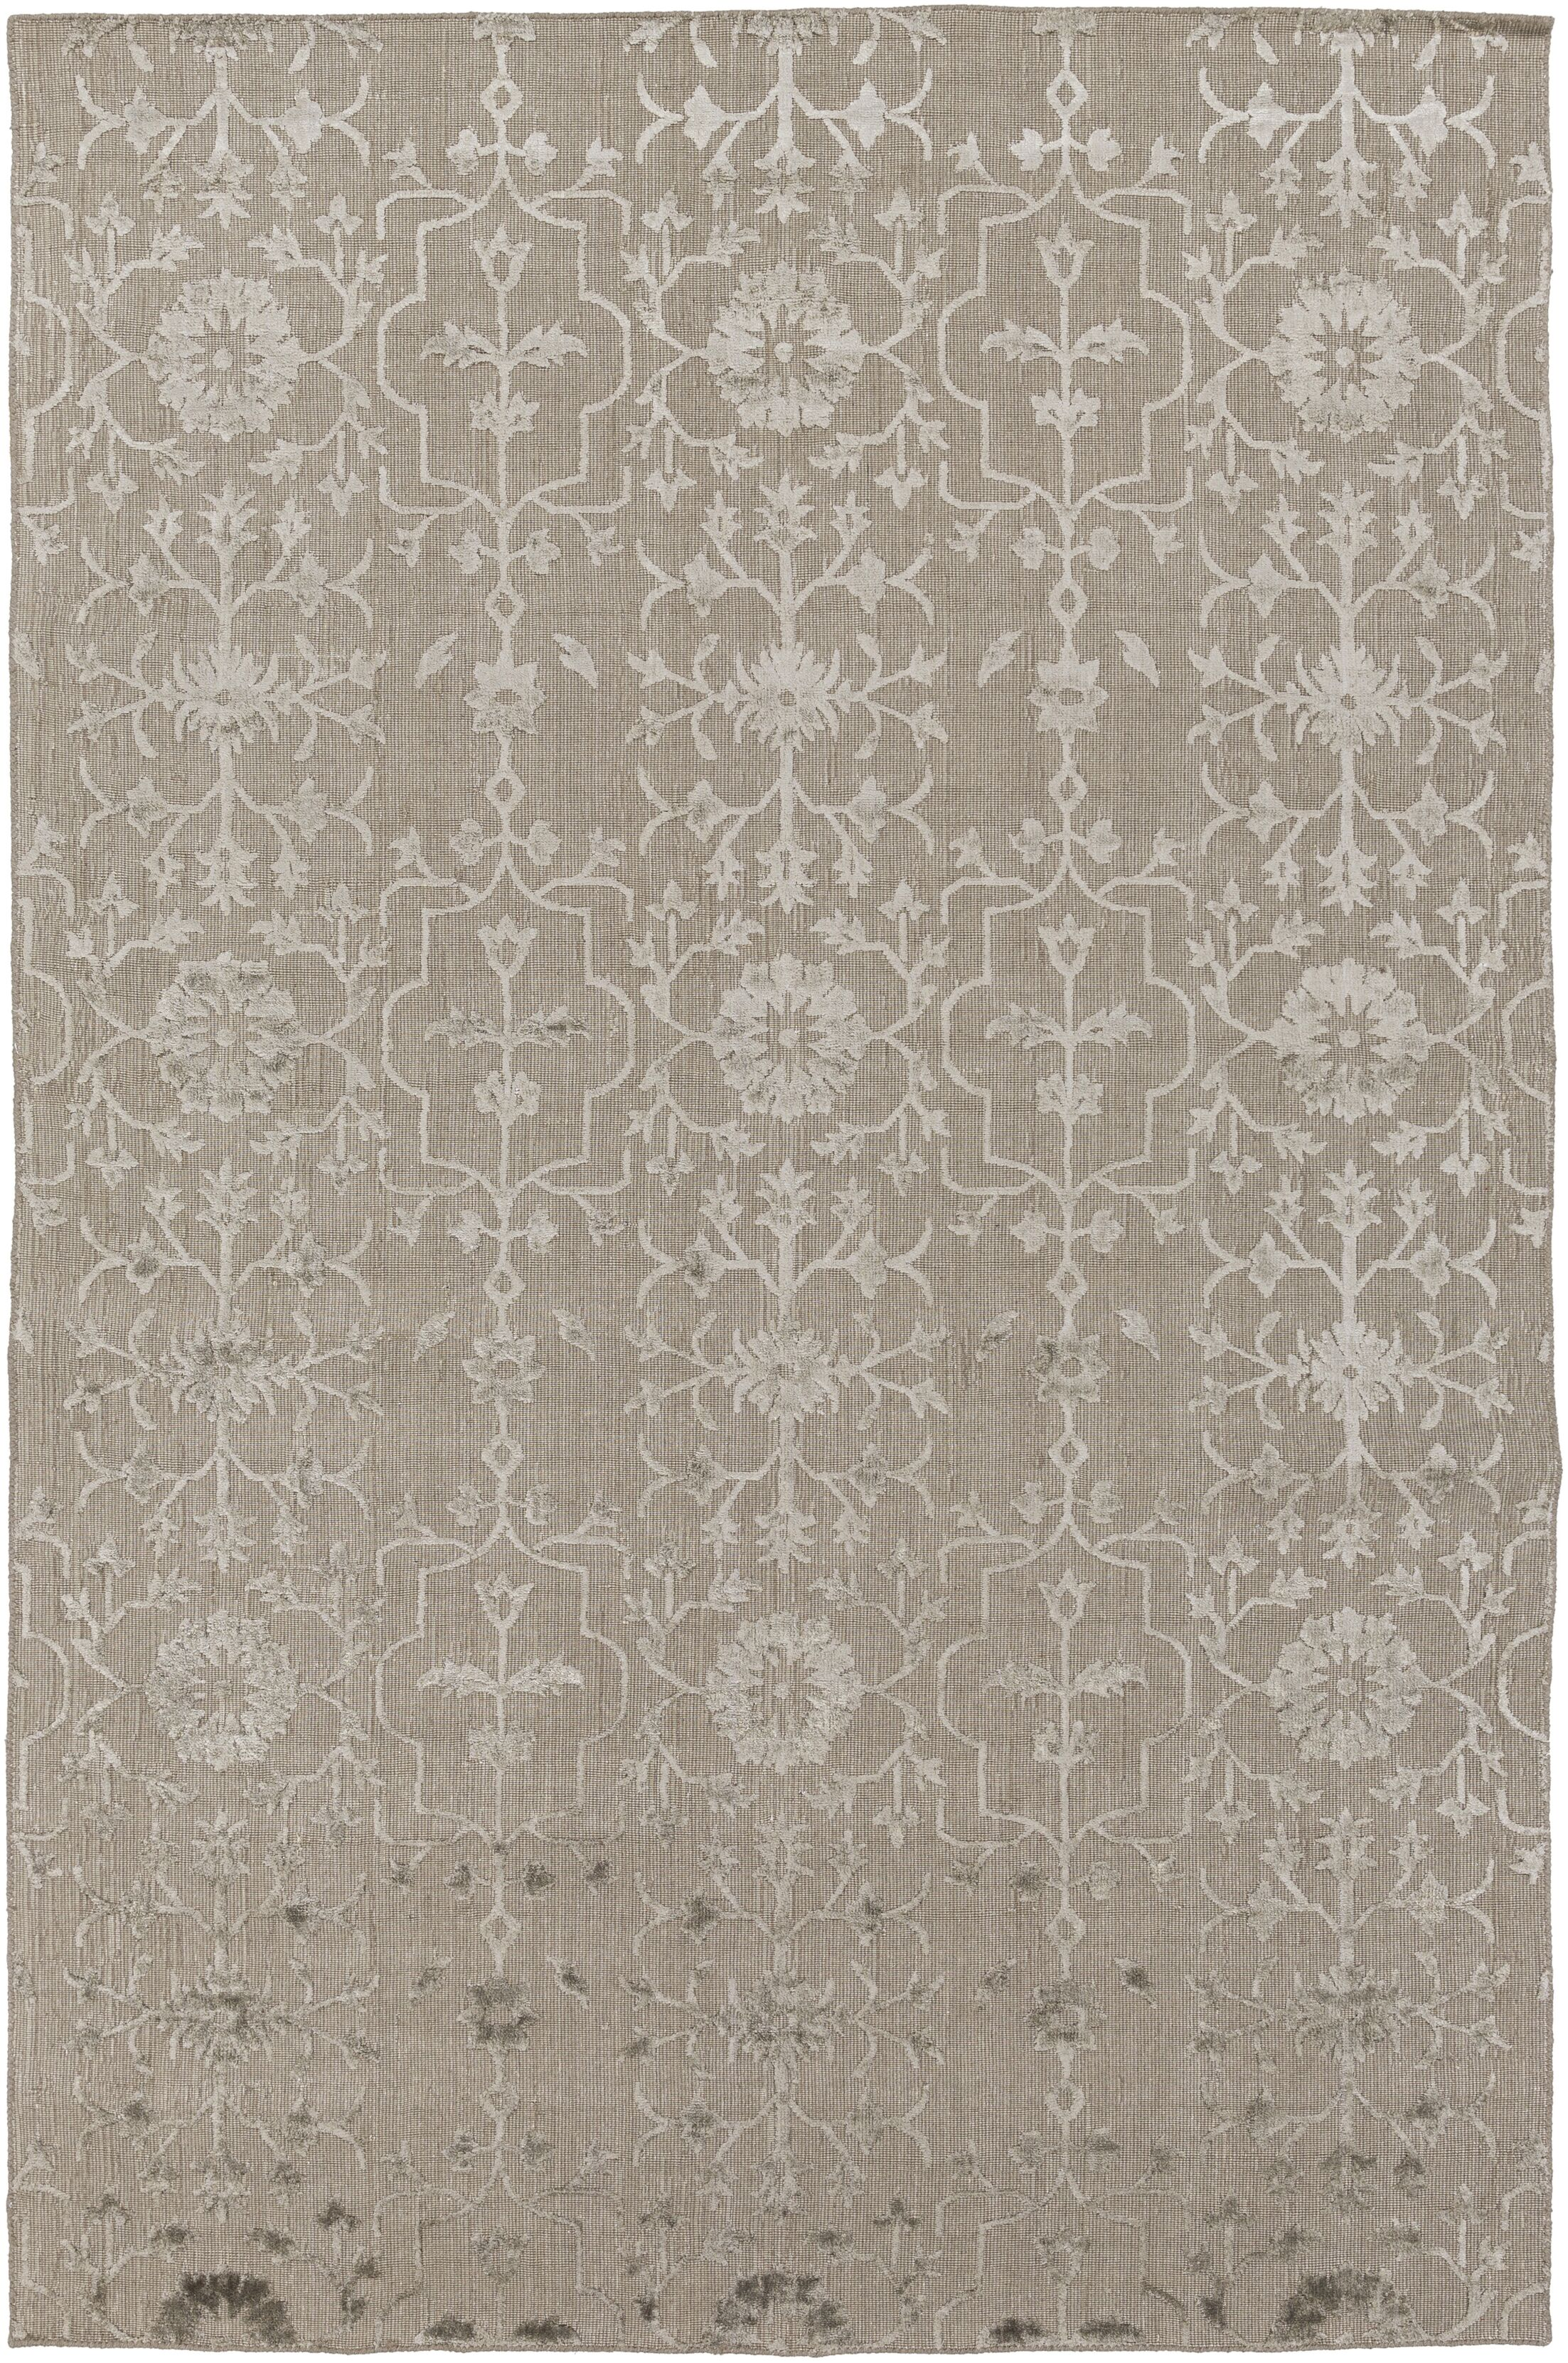 Anwen Hand-Knotted Taupe/Camel Area Rug Rug Size: Rectangle 9' x 13'